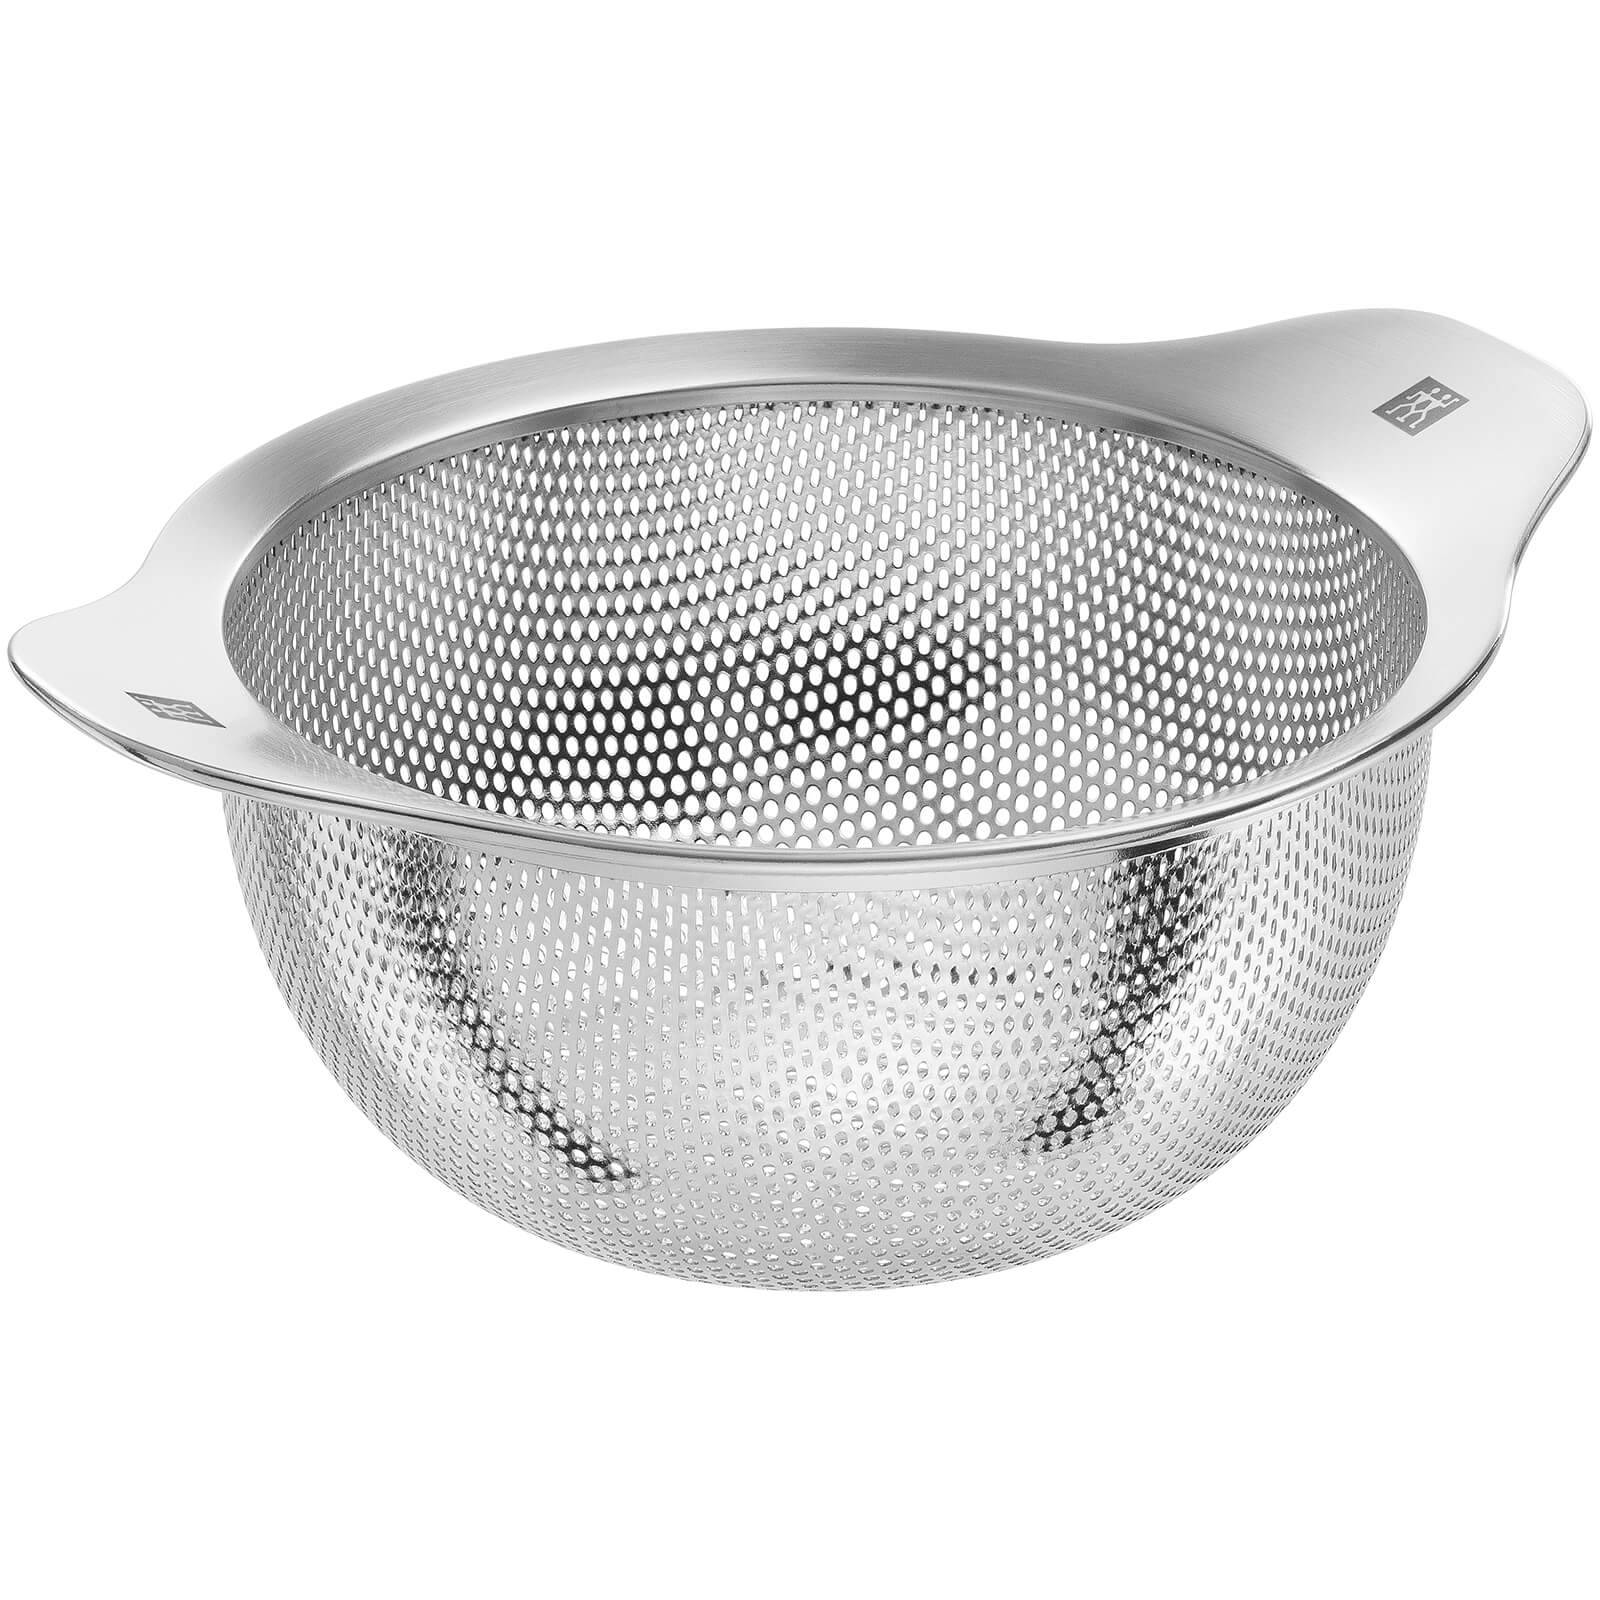 ZWILLING Table Strainer - 16cm